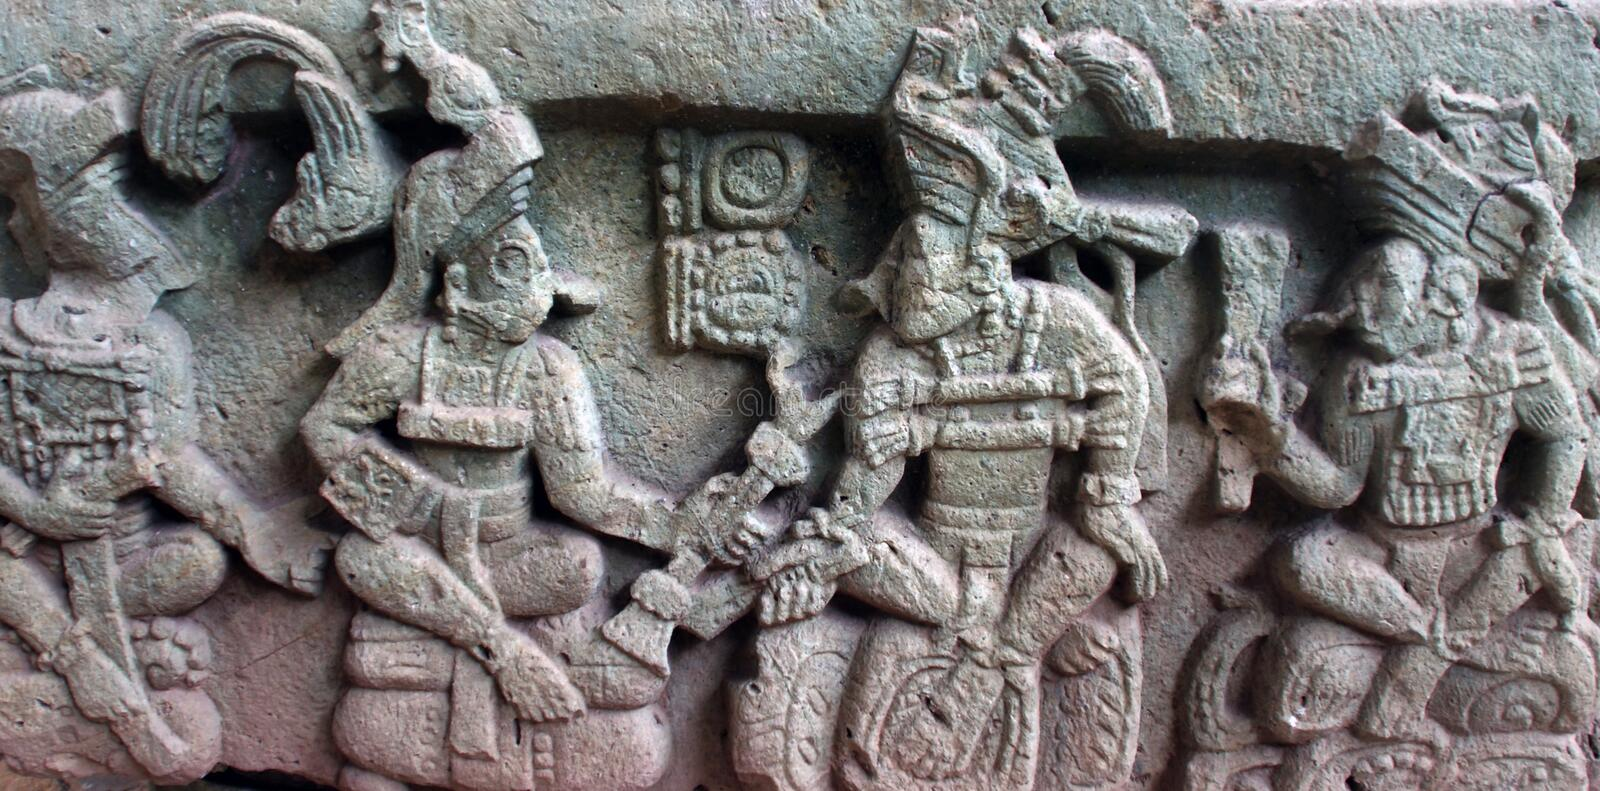 Bas Relief depicting K'inich Yax K'uk' Mo' stock image